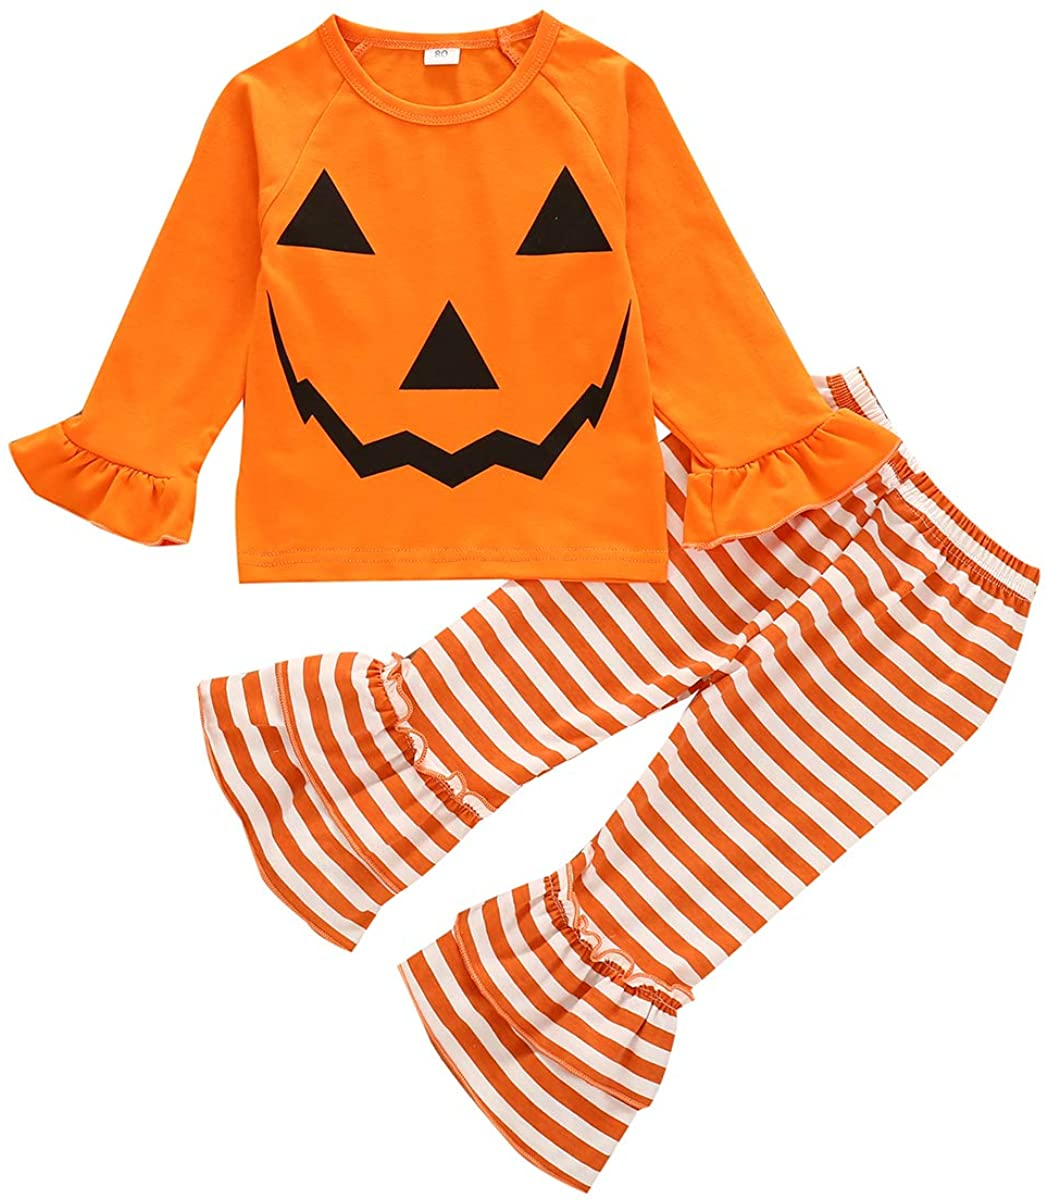 Muasaaluxi Toddler Kid Baby Girls Halloween Outfits Ruffled Long Sleeve Top Blouse Striped Pants Pajamas Set 1-6Y